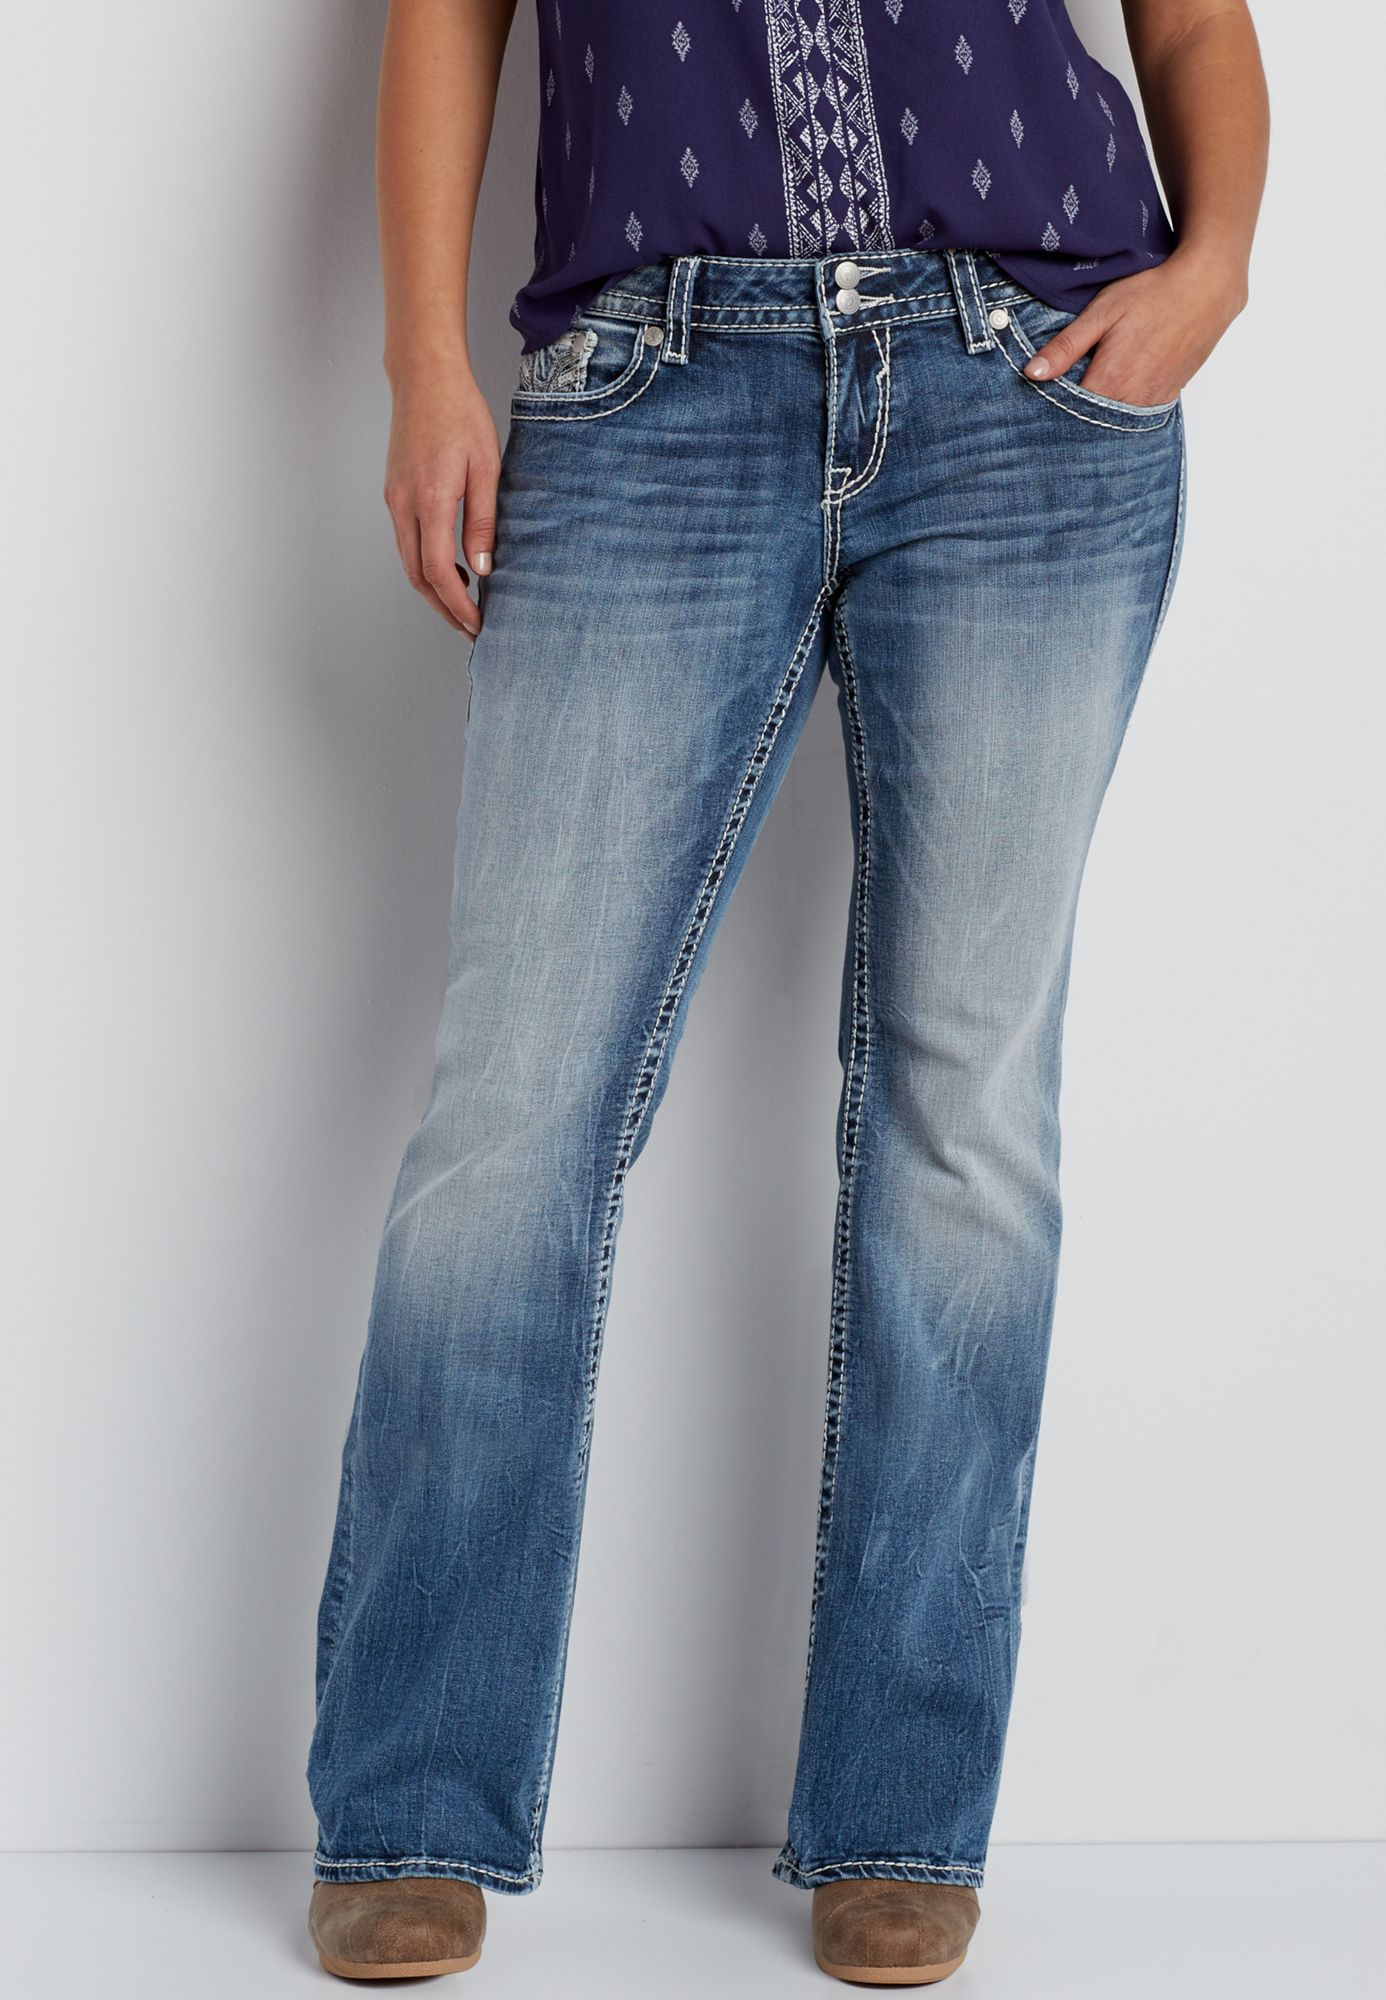 986a6d84a41 Vigoss ® plus size medium wash bootcut jeans with veining (original price